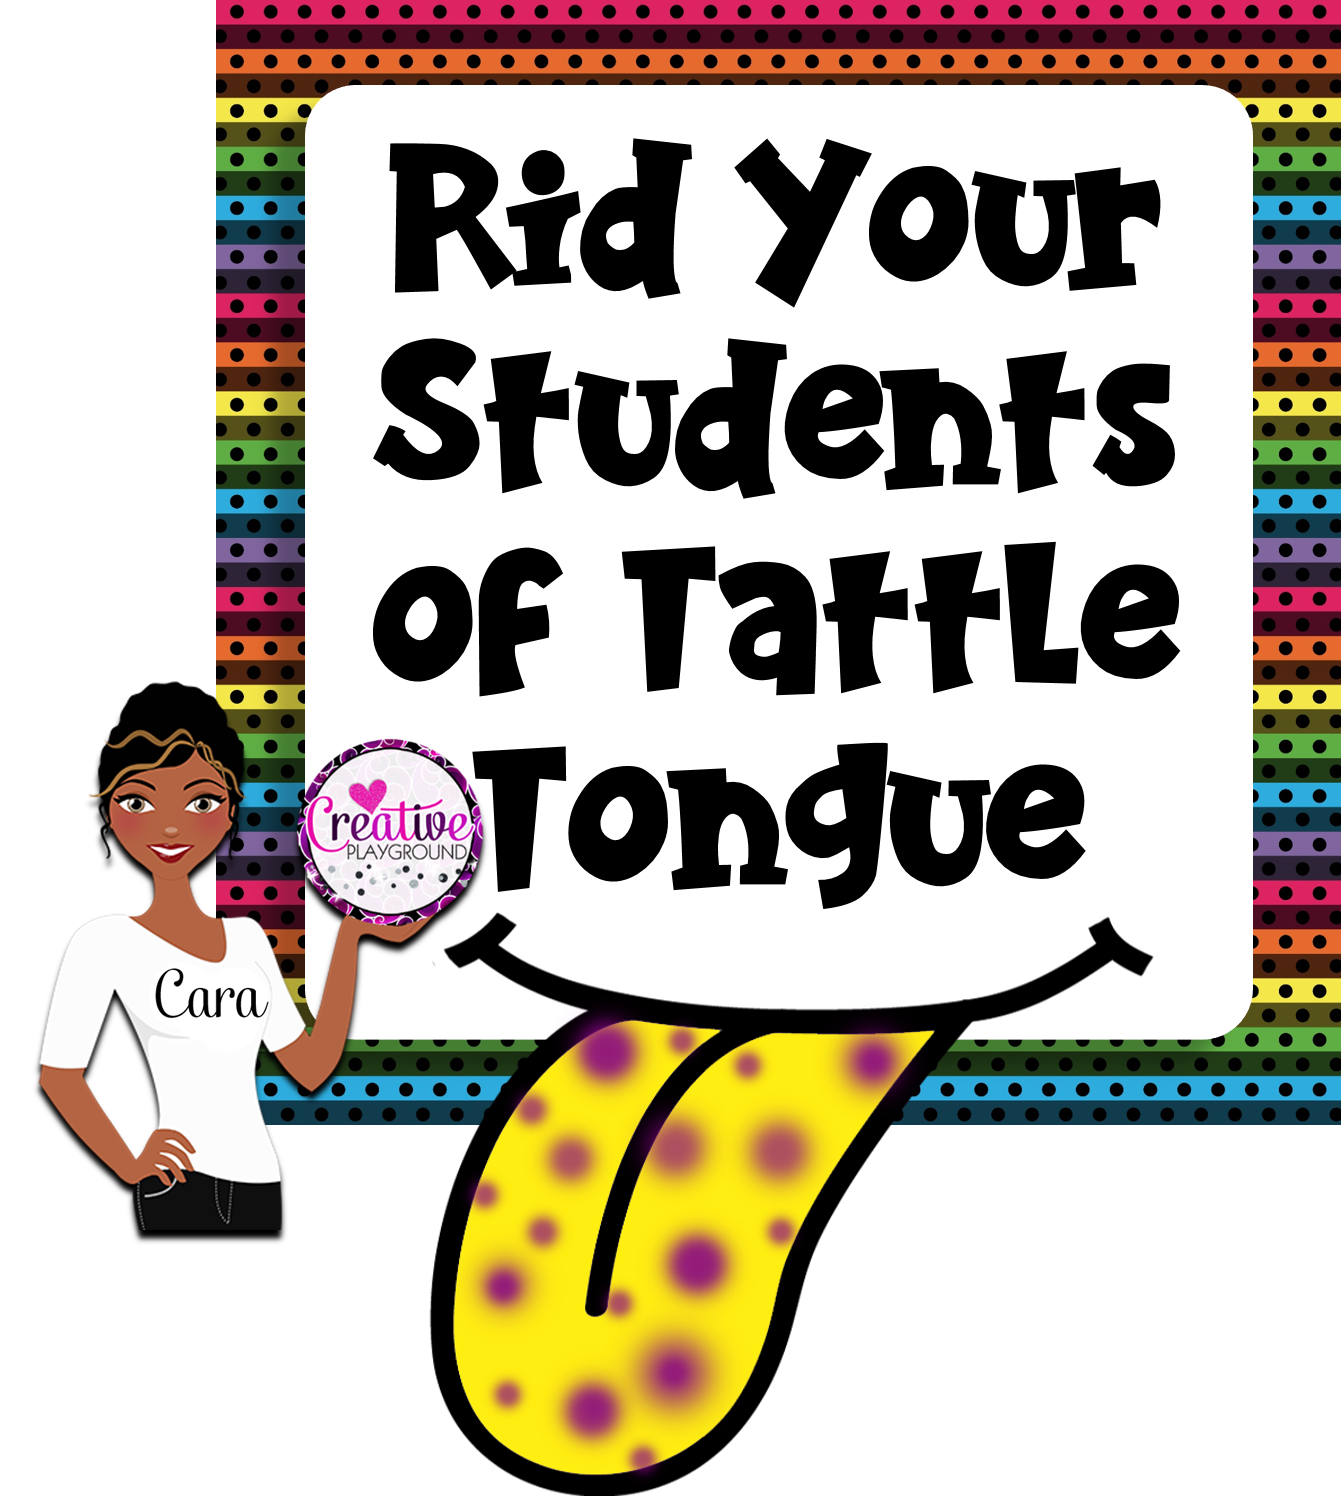 Creative Playground Rid Your Students Of Tattle Tongue